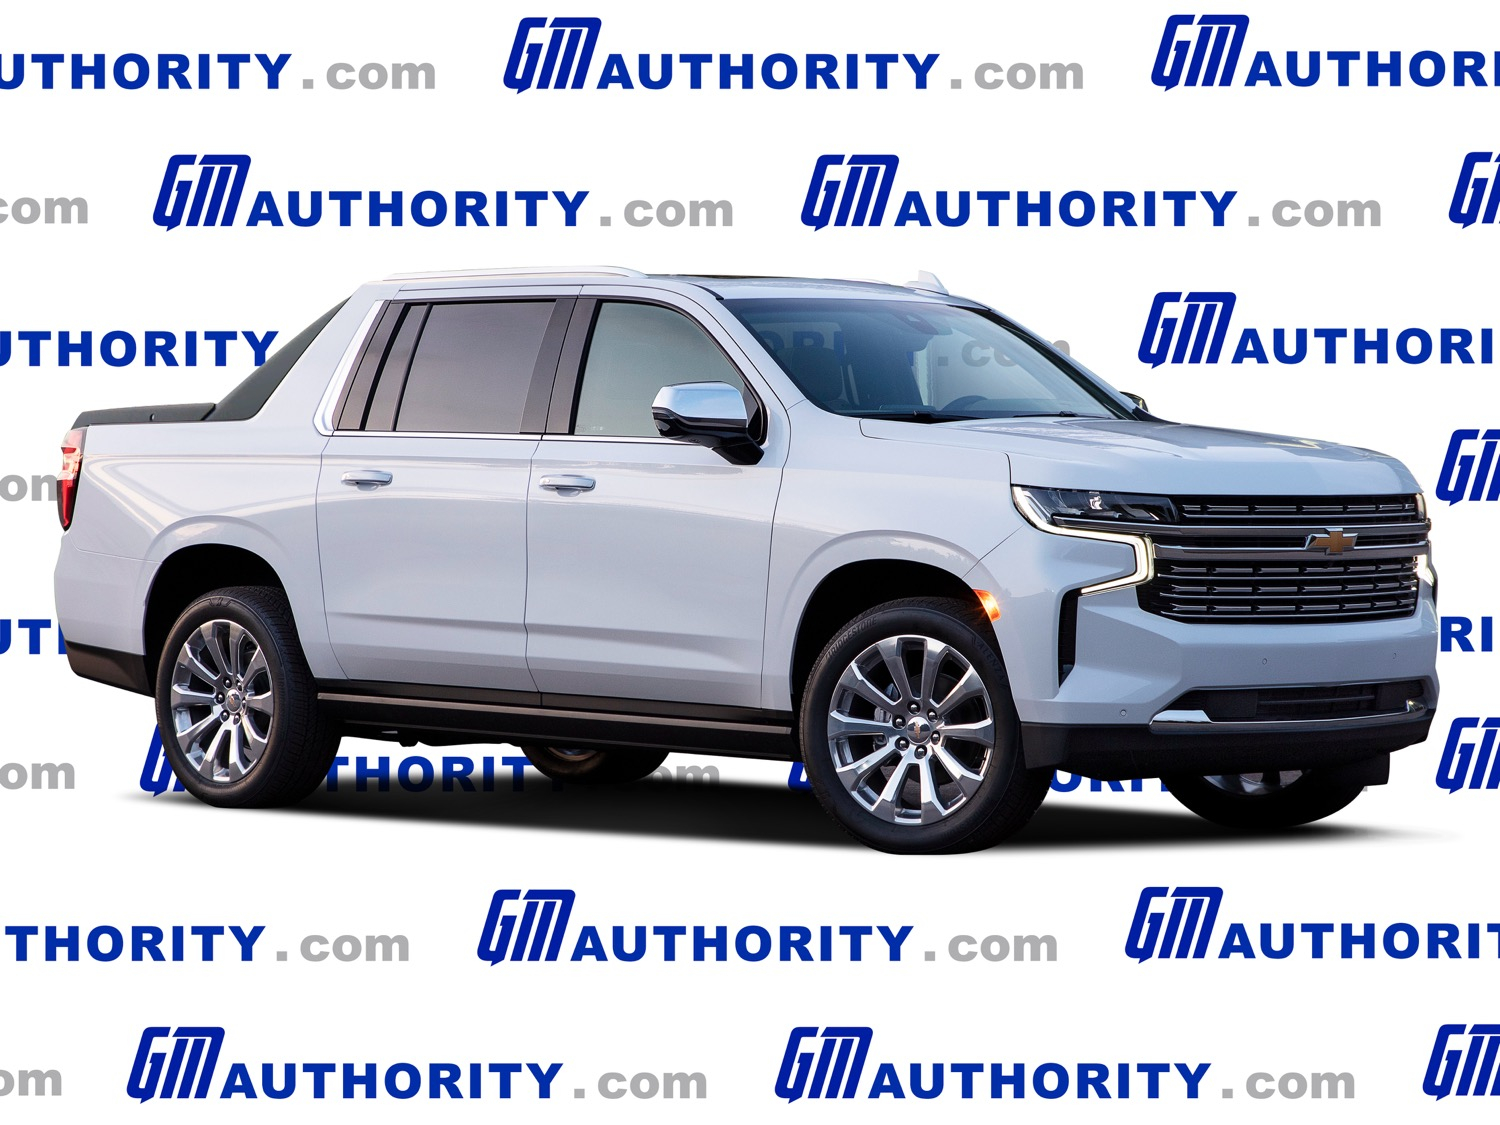 2021 Chevrolet Avalanche Rendered | Gm Authority 2021 Chevy Colorado Z71 Used, Wheels, Weight